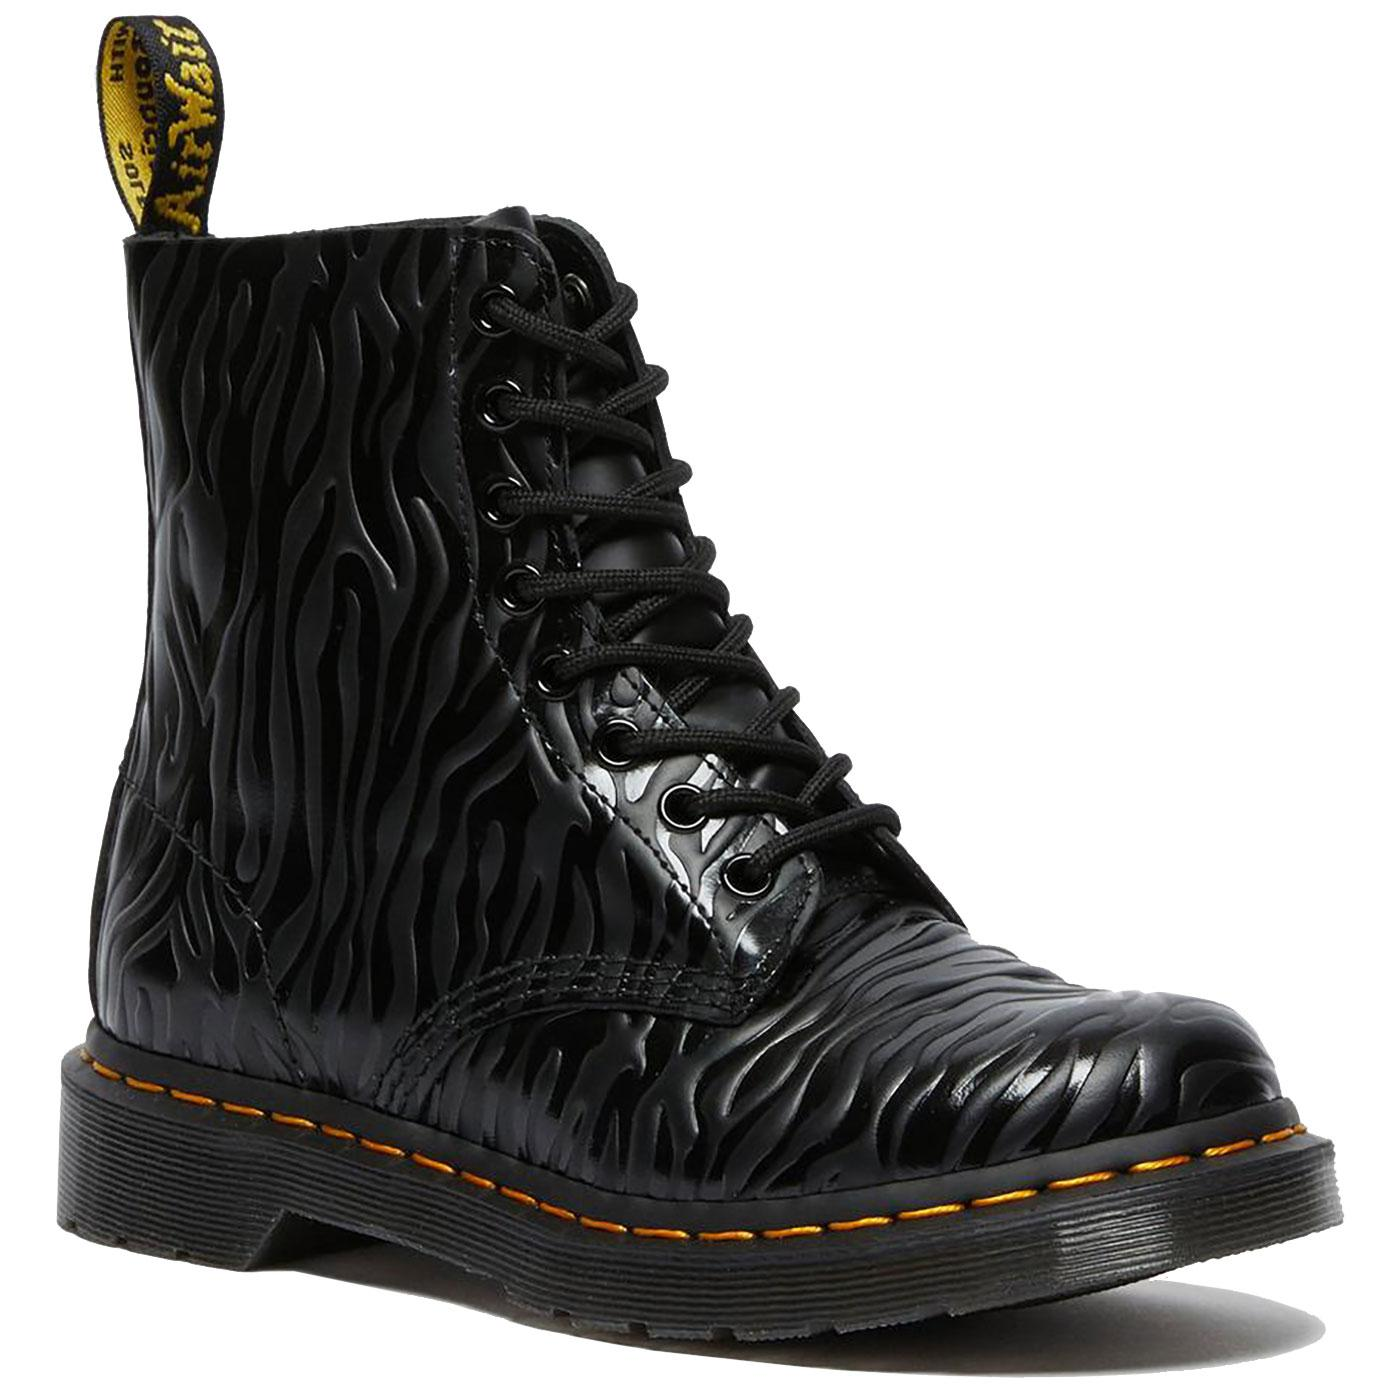 1460 Pascal DR MARTENS Zebra Embossed Gloss Boots